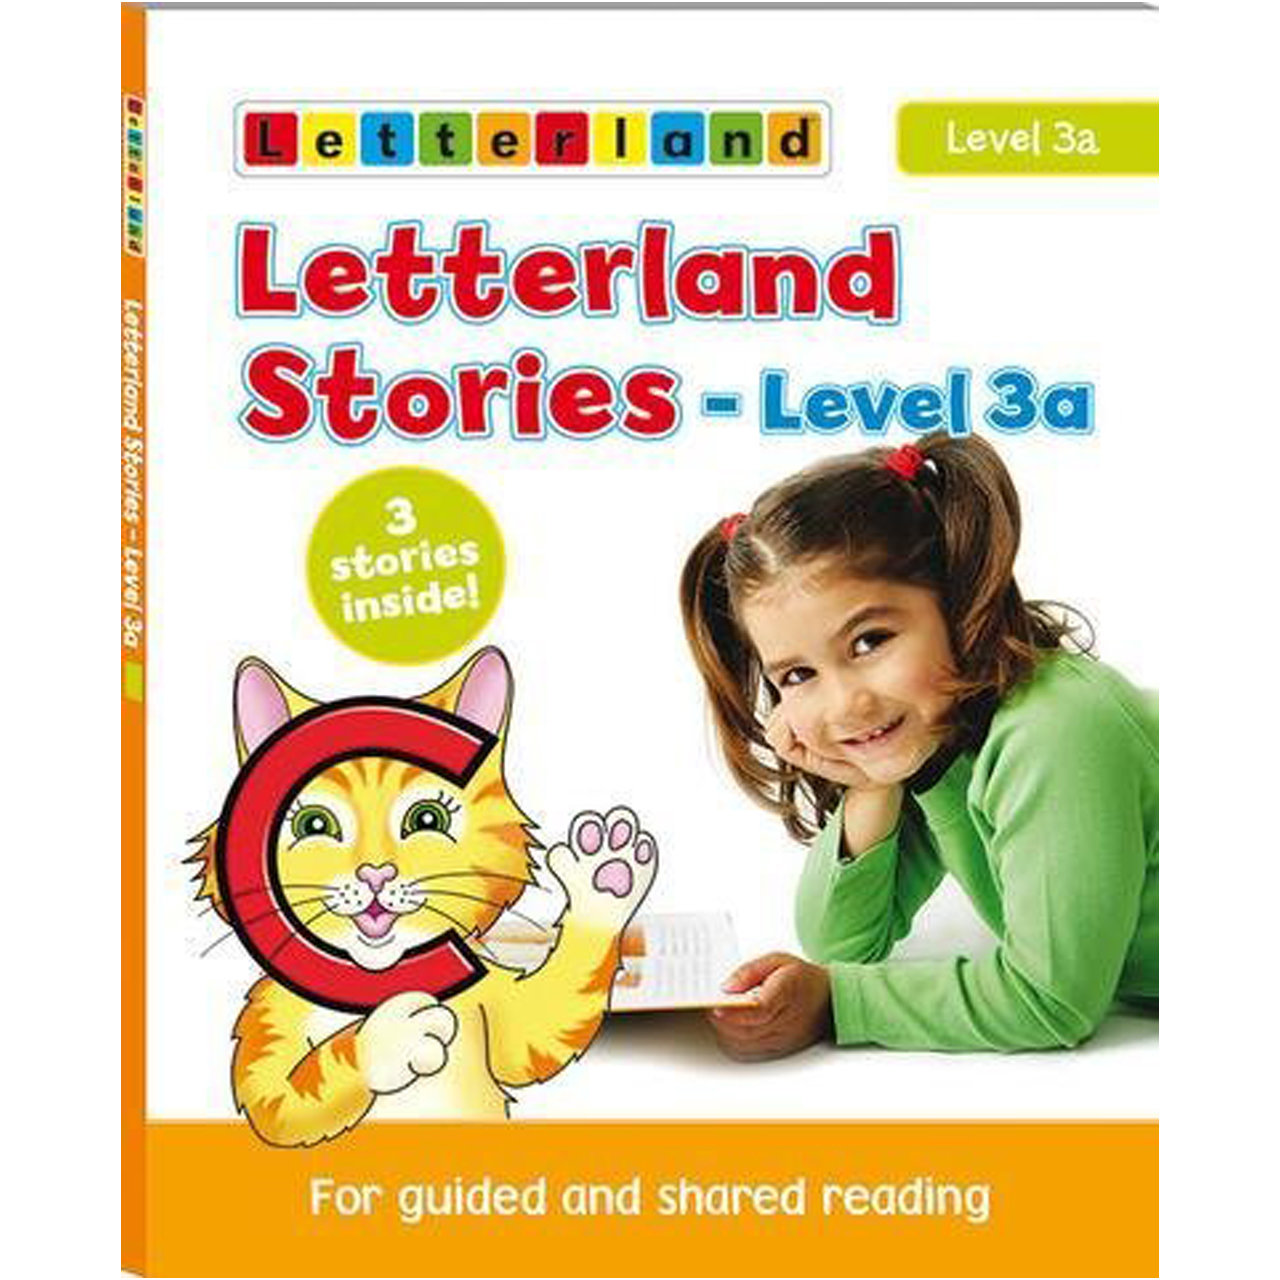 Letterland Stories - Level 3a